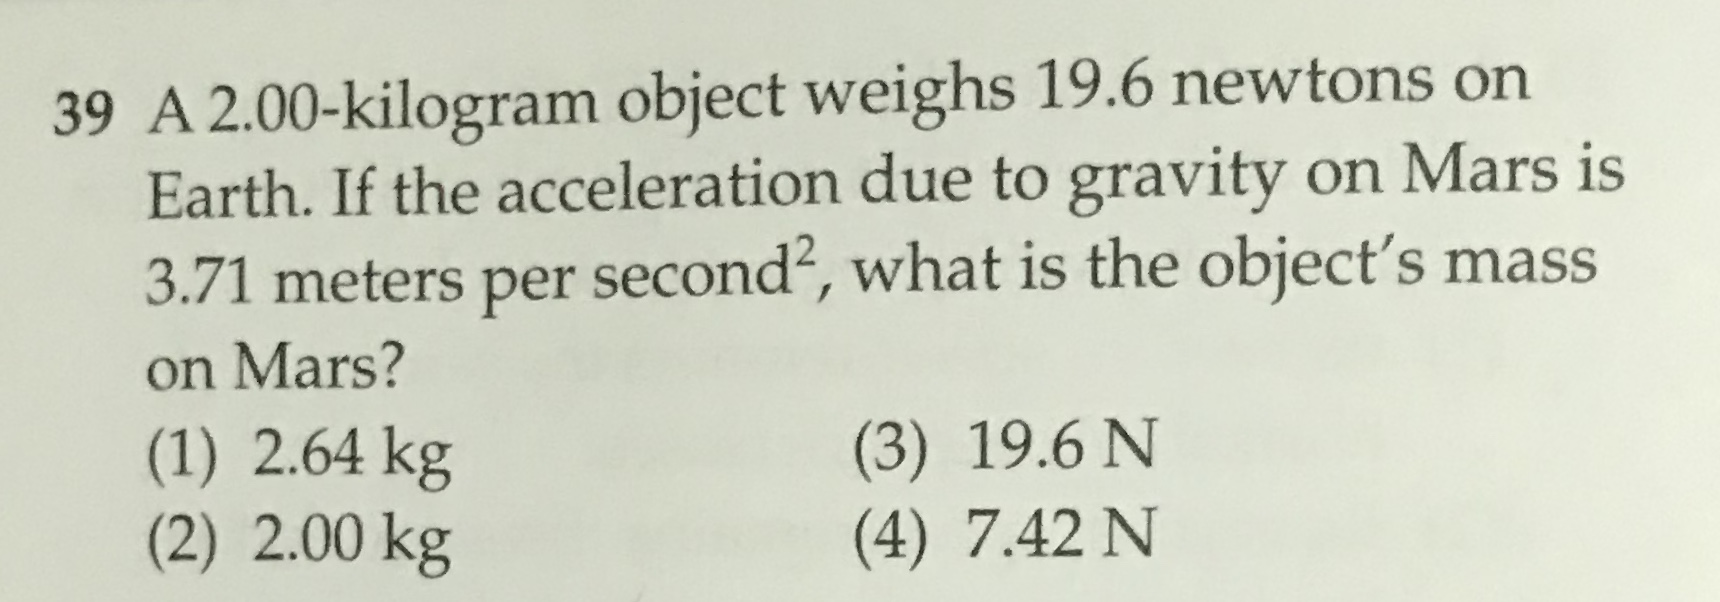 39 A 2.00-kilogram object weighs 19.6 newtons on Earth. If the acceleration due to gravity on Mars is 3.71 meters per second2, what is the object's mass on Mars? (1) 2.64 kg (2) 2.00 kg (3) 19.6 N (4) 7.42 N